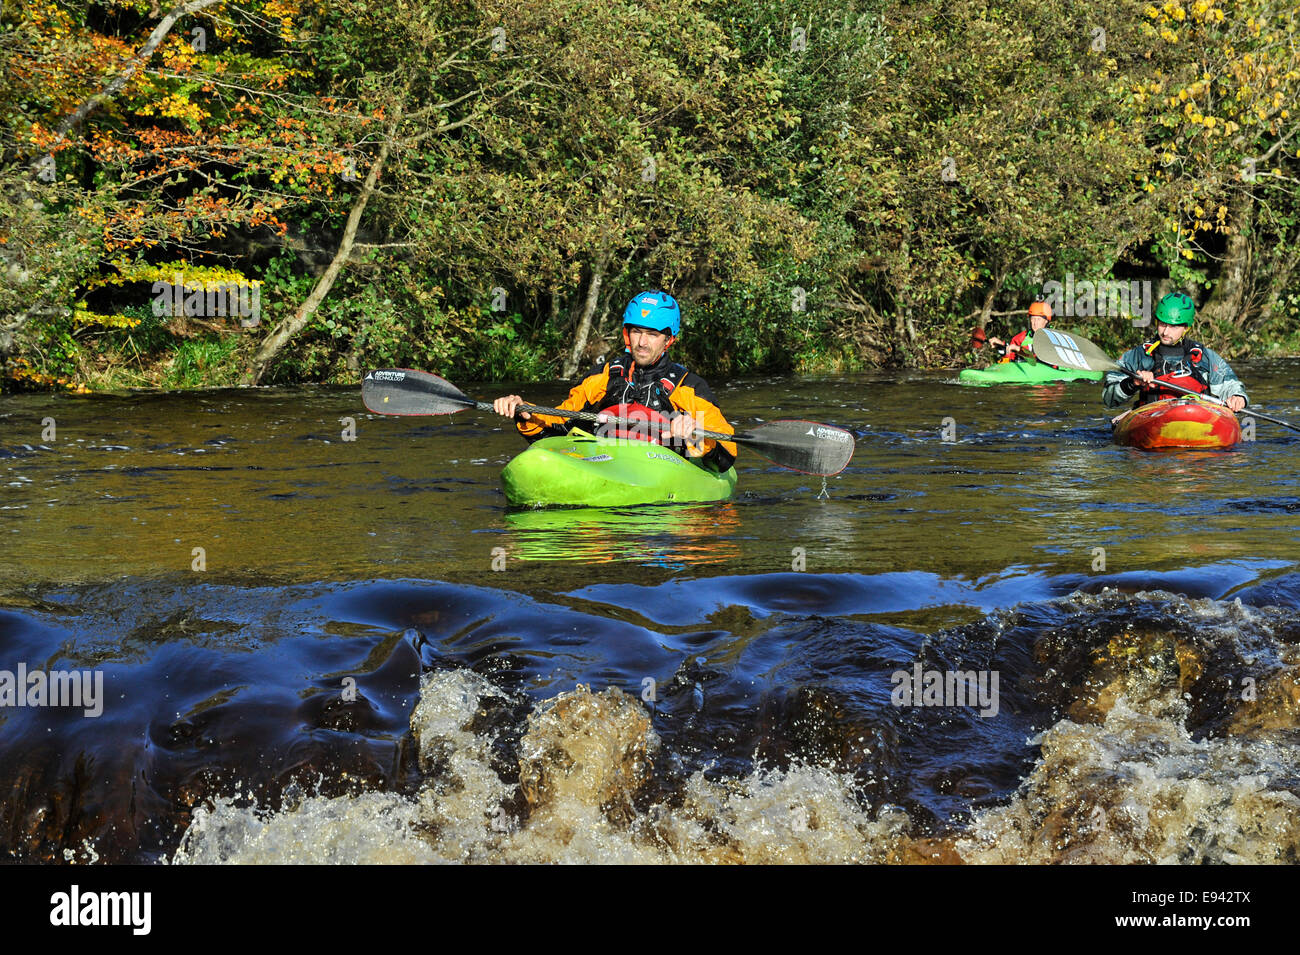 Stock Photo - Kayaking competition, Buncrana, County Donegal, Ireland.  ©George Sweeney /Alamy - Stock Image